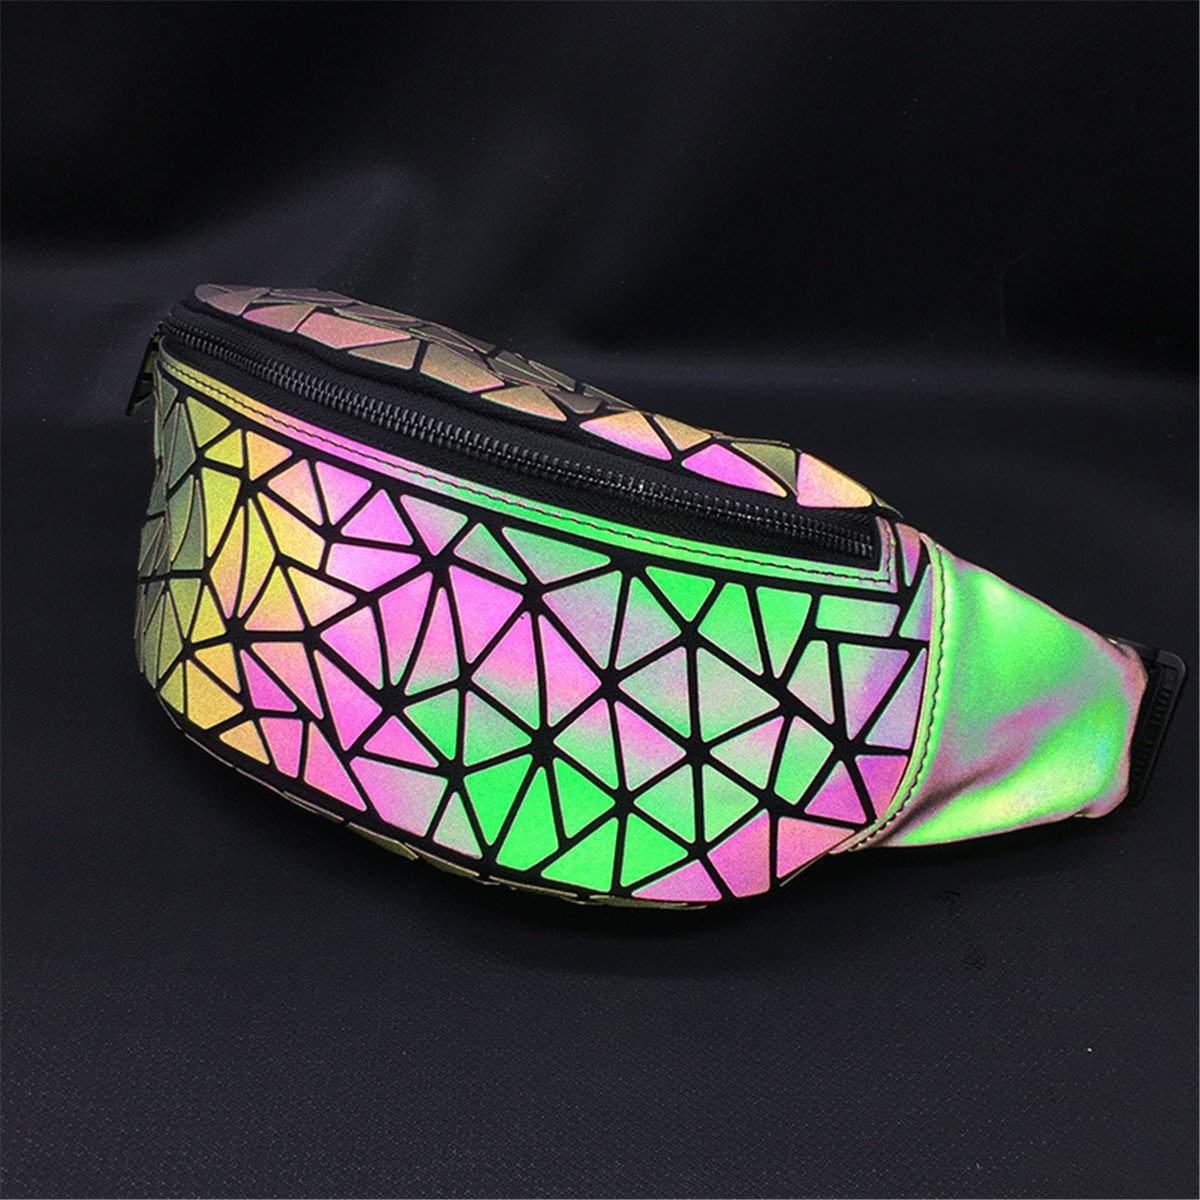 BeautyWJY Geometric Small Fashion Pu Leather Waist Fanny Pack Bag for Girls /& Women Cellphone Pouch 1#